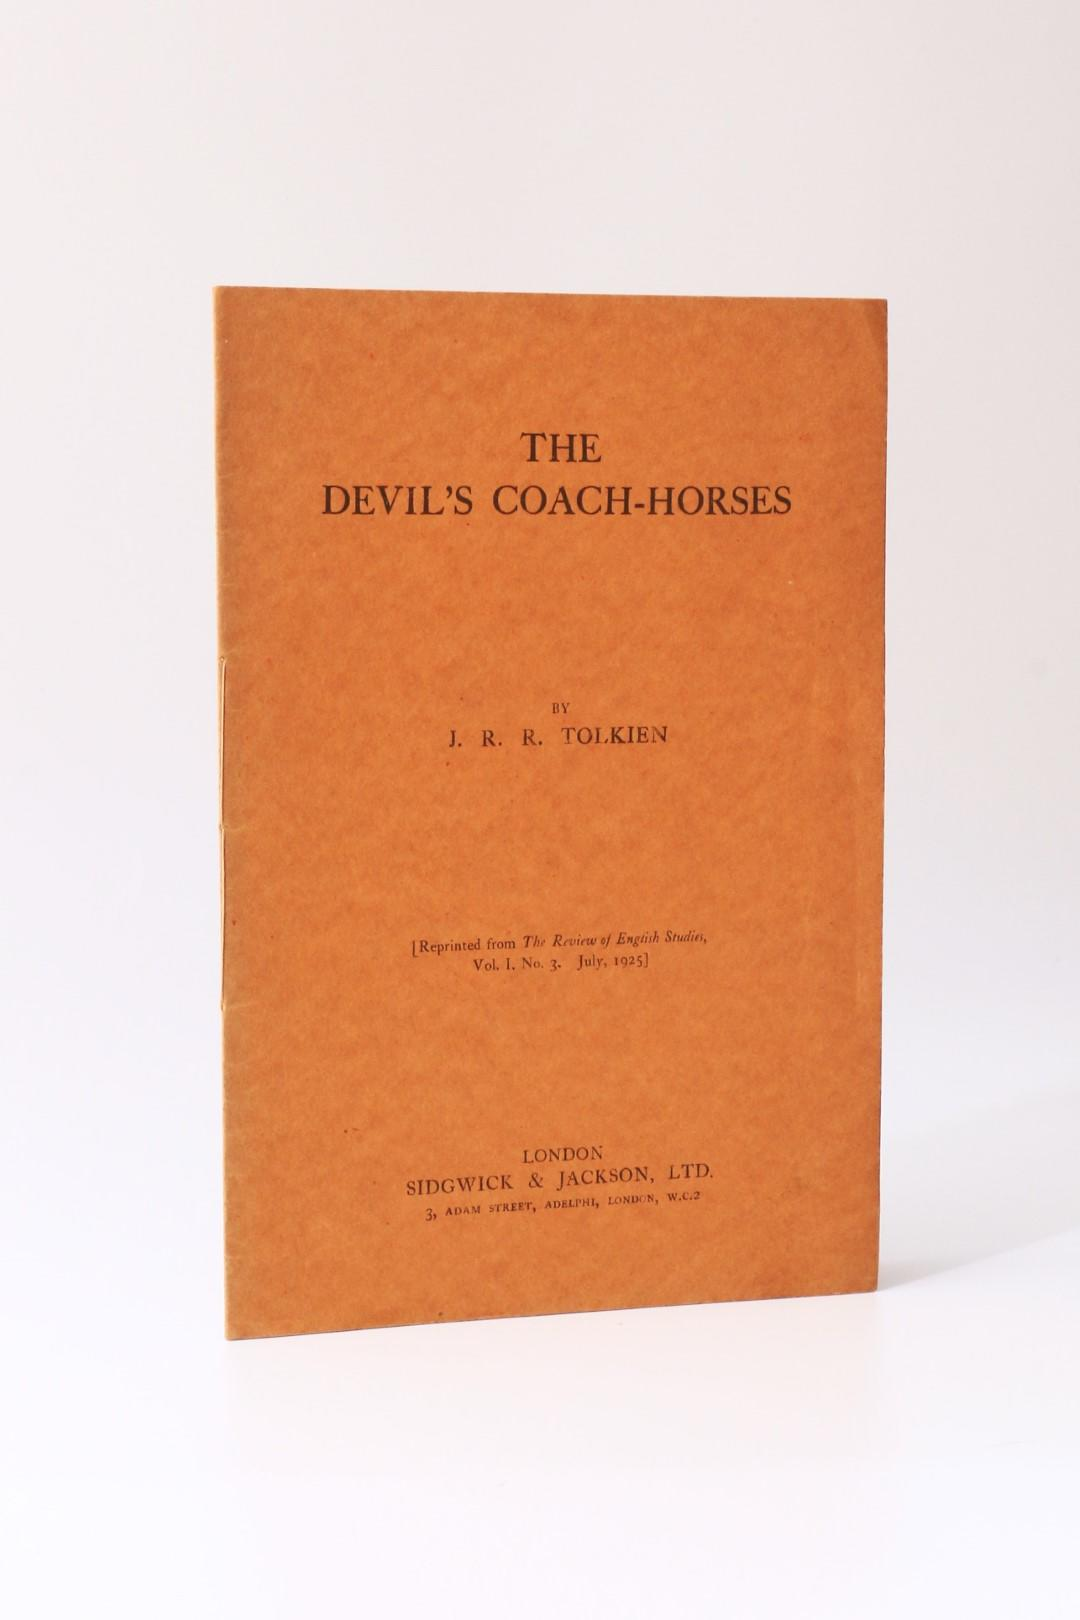 J.R.R. Tolkien - The Devil's Coach-Horses - Sidgwick & Jackson, 1925, First Edition.